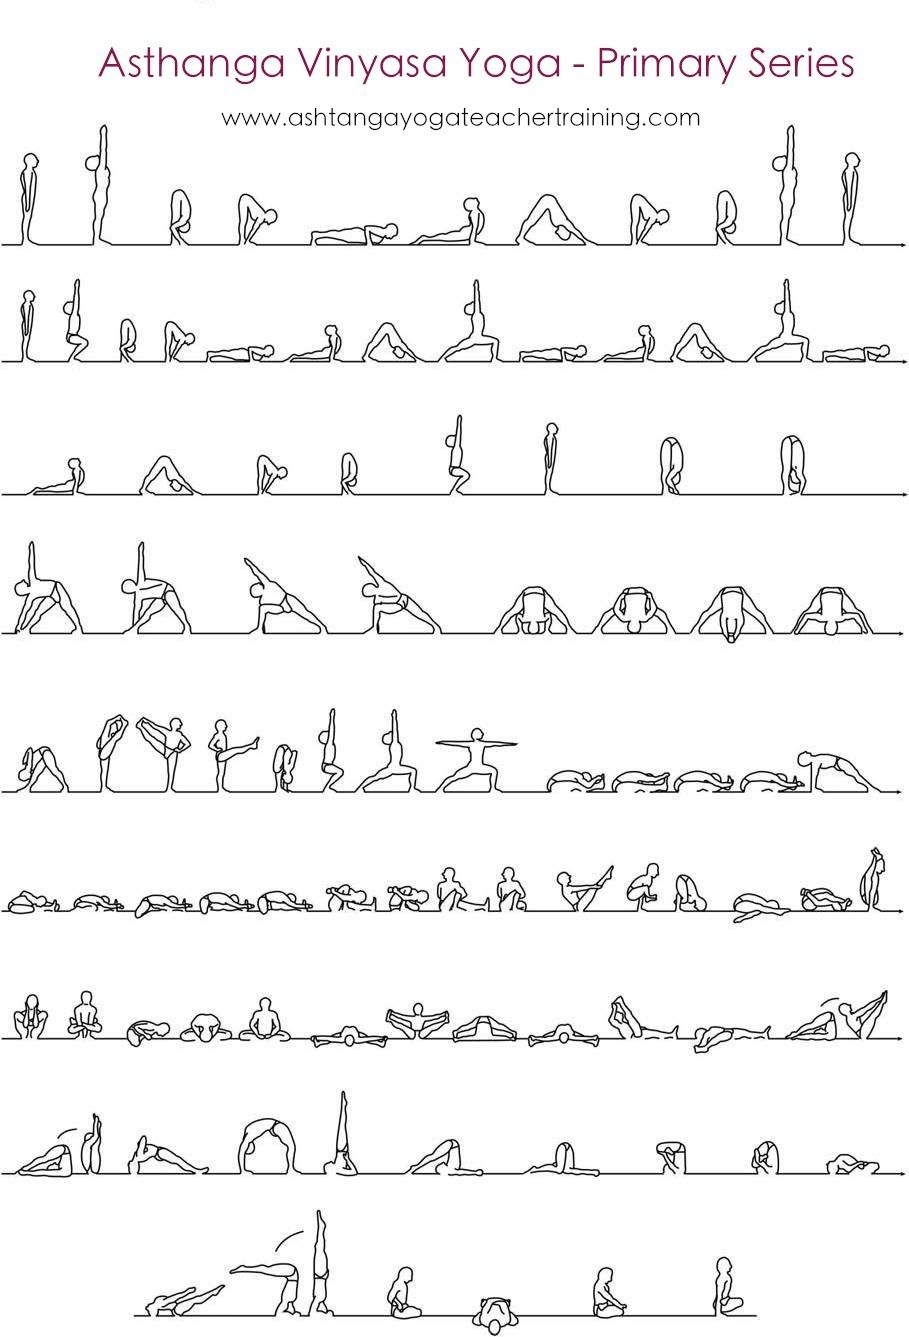 Ashtanga yoga primary series teacher training chartg pixels also pin by katie sessums on you better work  tch pinterest rh